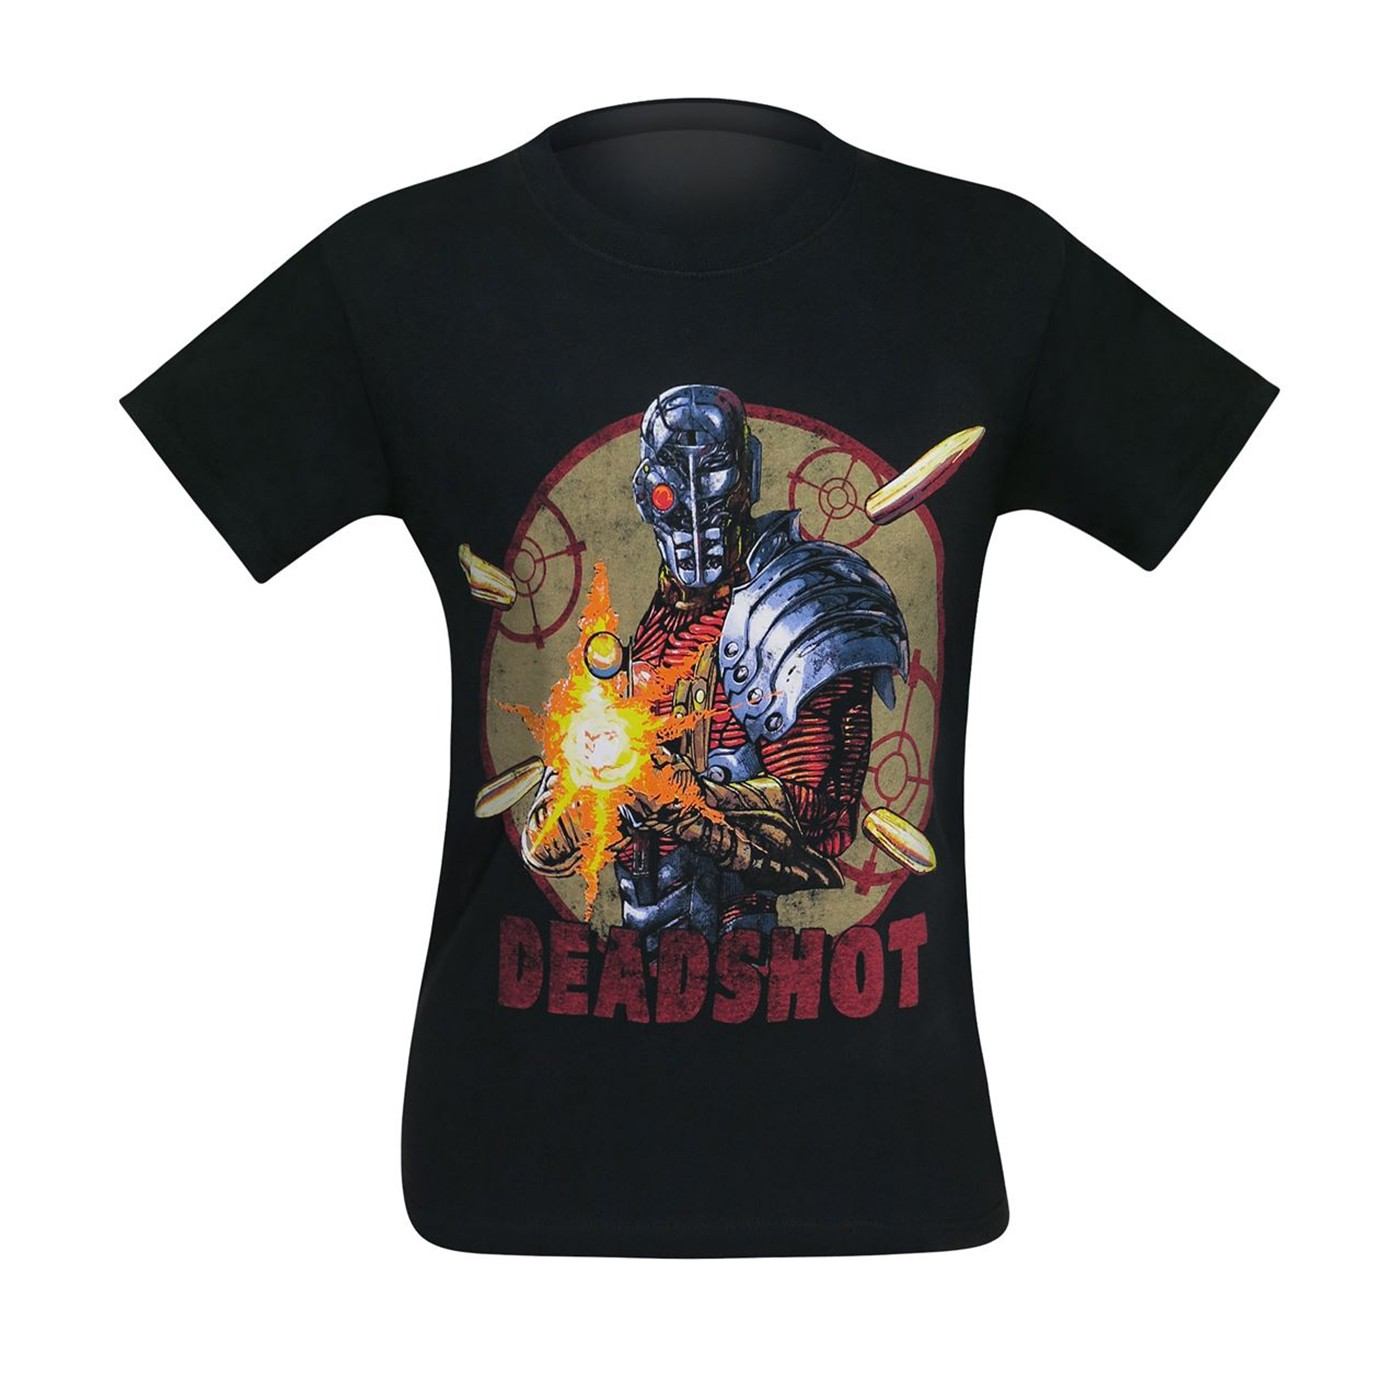 Deadshot Shooting T-Shirt